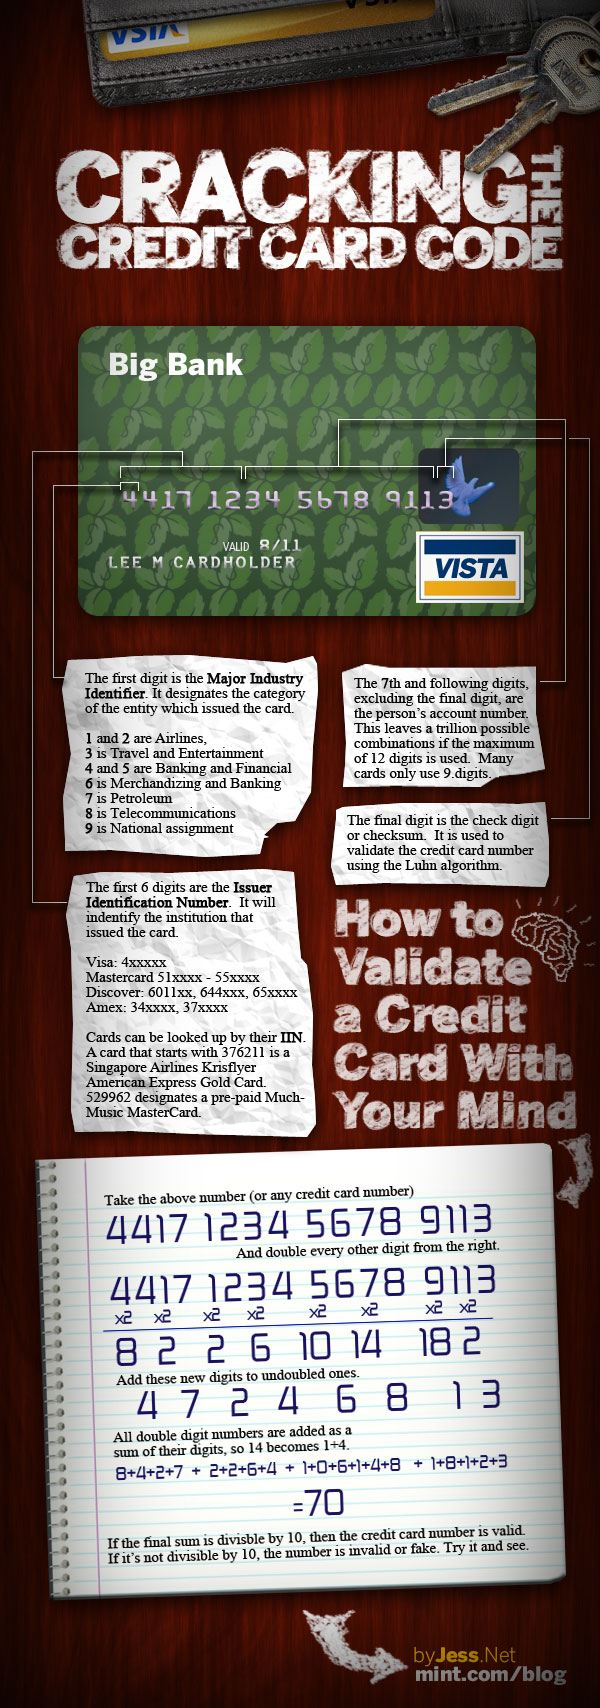 Cracking The Credit Card Code [Infographic]